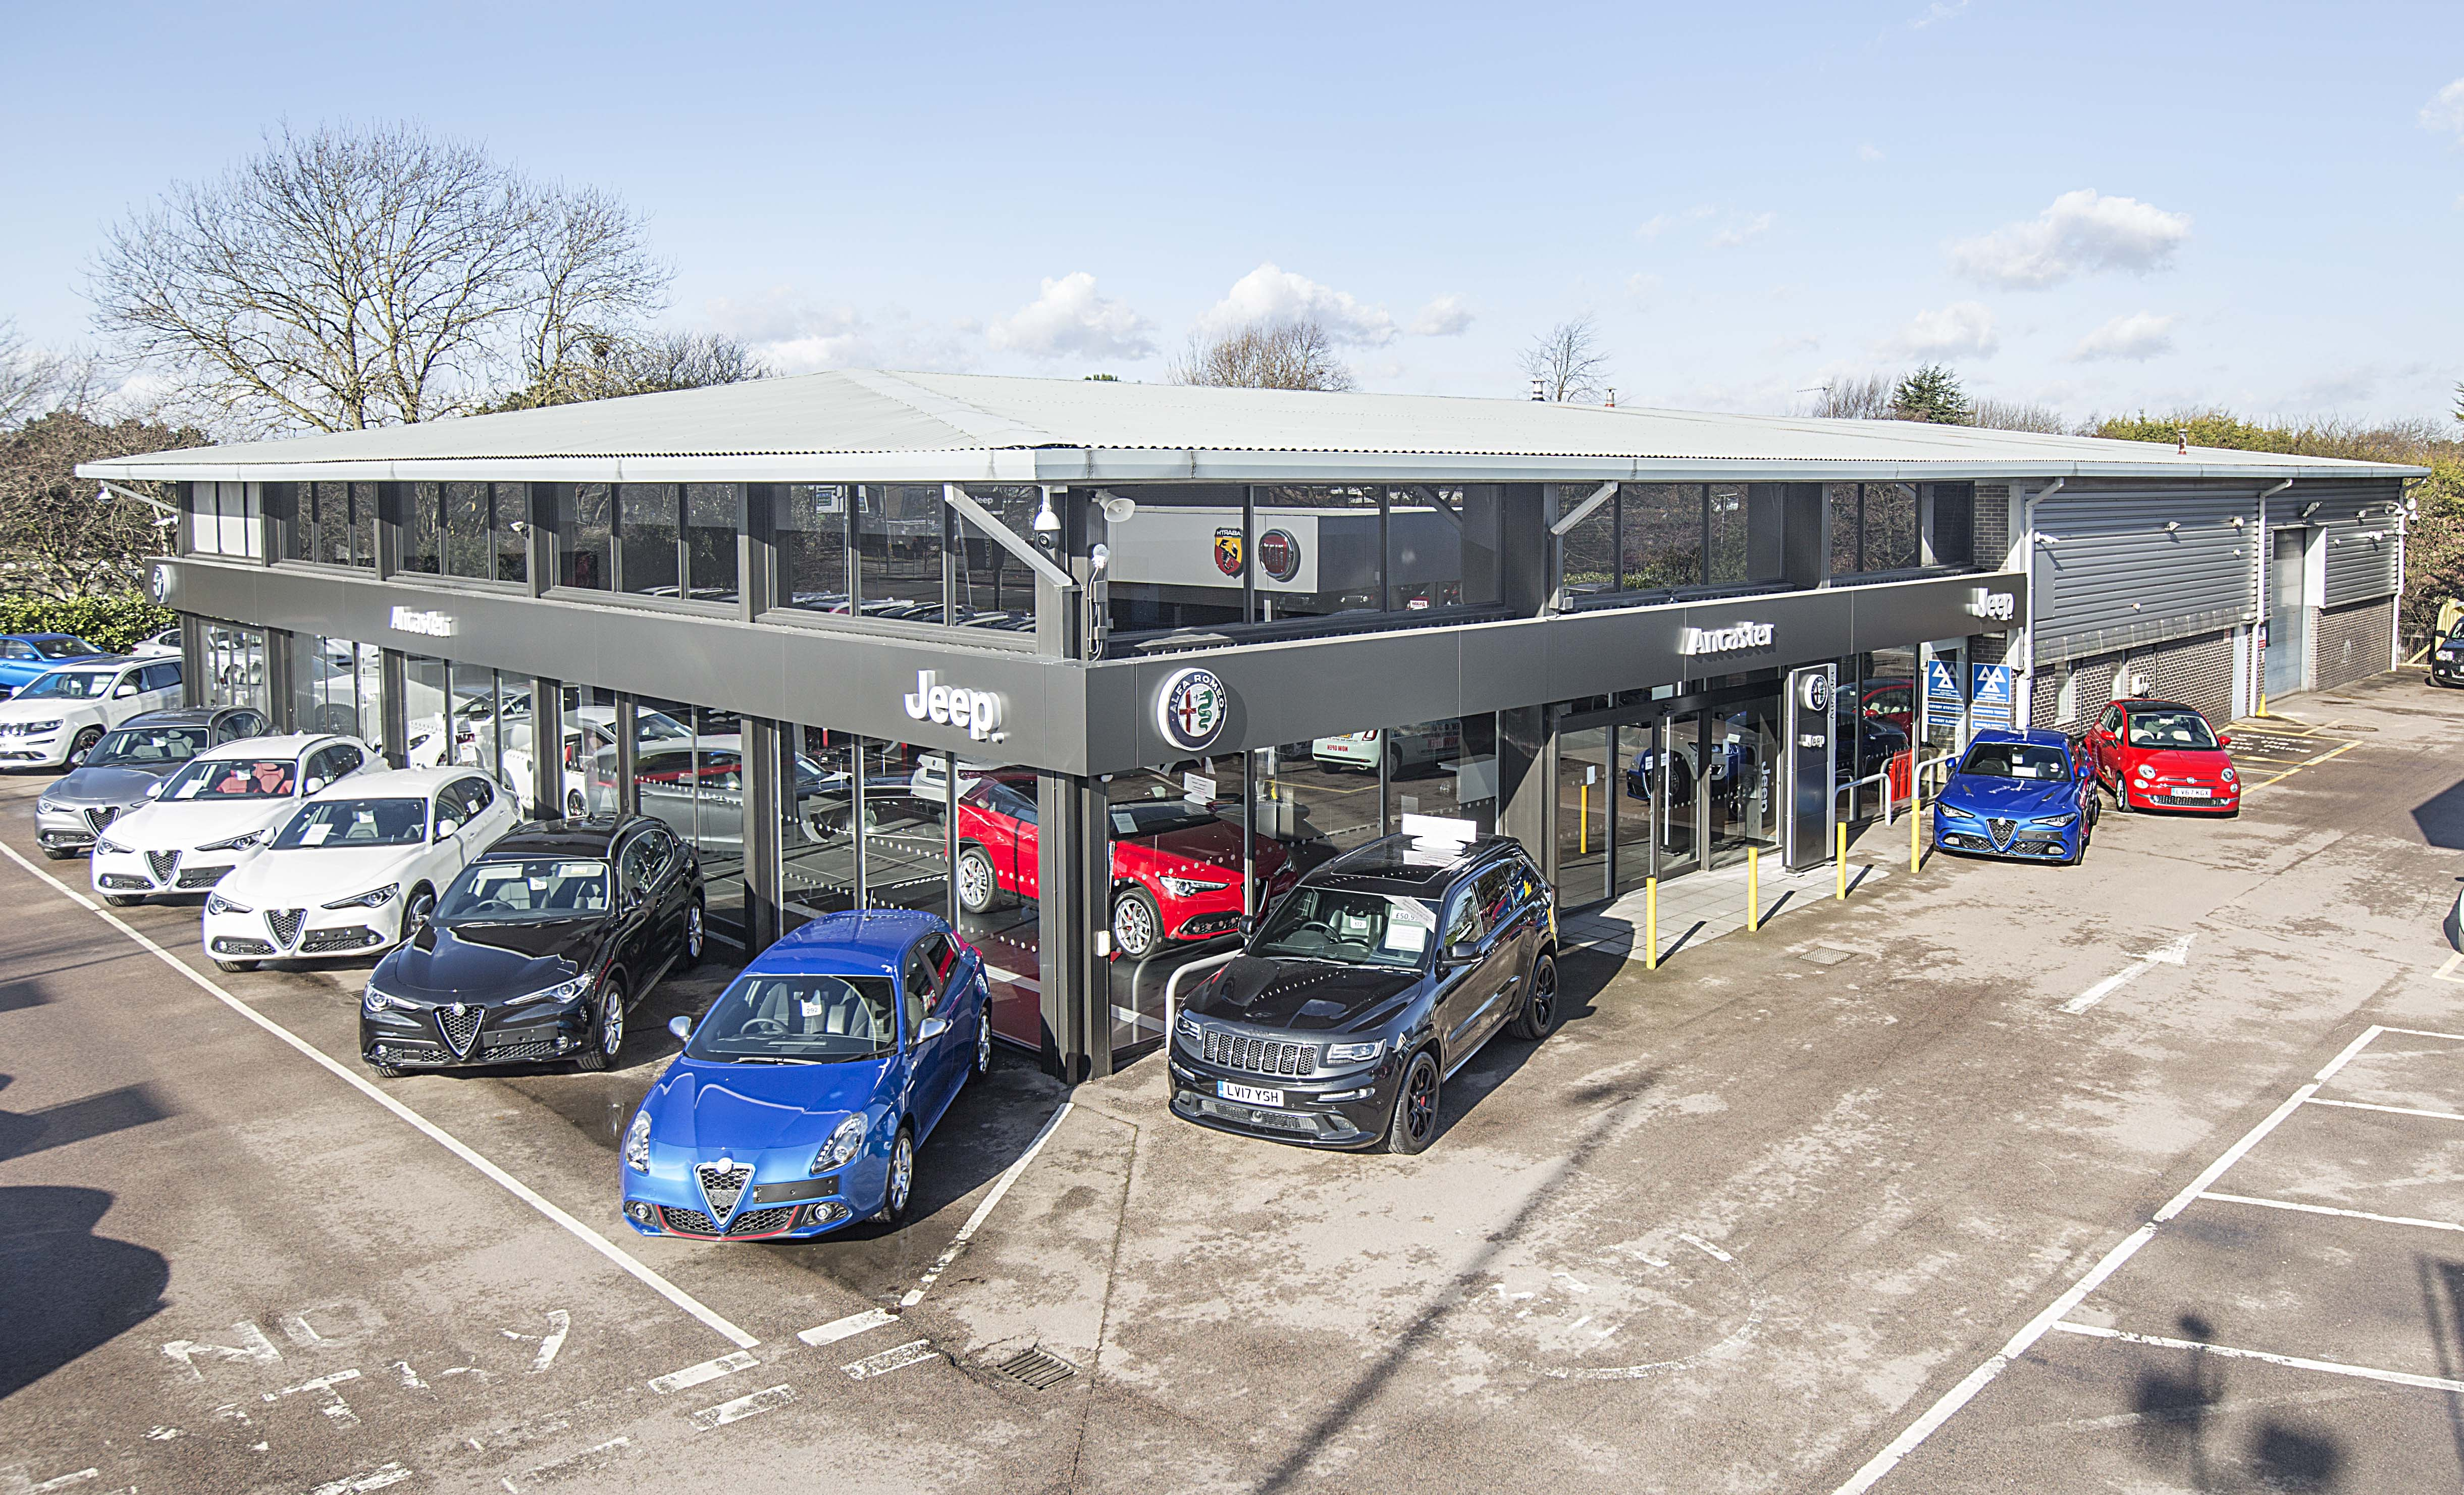 Johnston Chrysler Fiat >> DEALER GROUP ANCASTER MOVES TO NEW DARTFORD SITE - Press - Fiat Group Automobiles Press